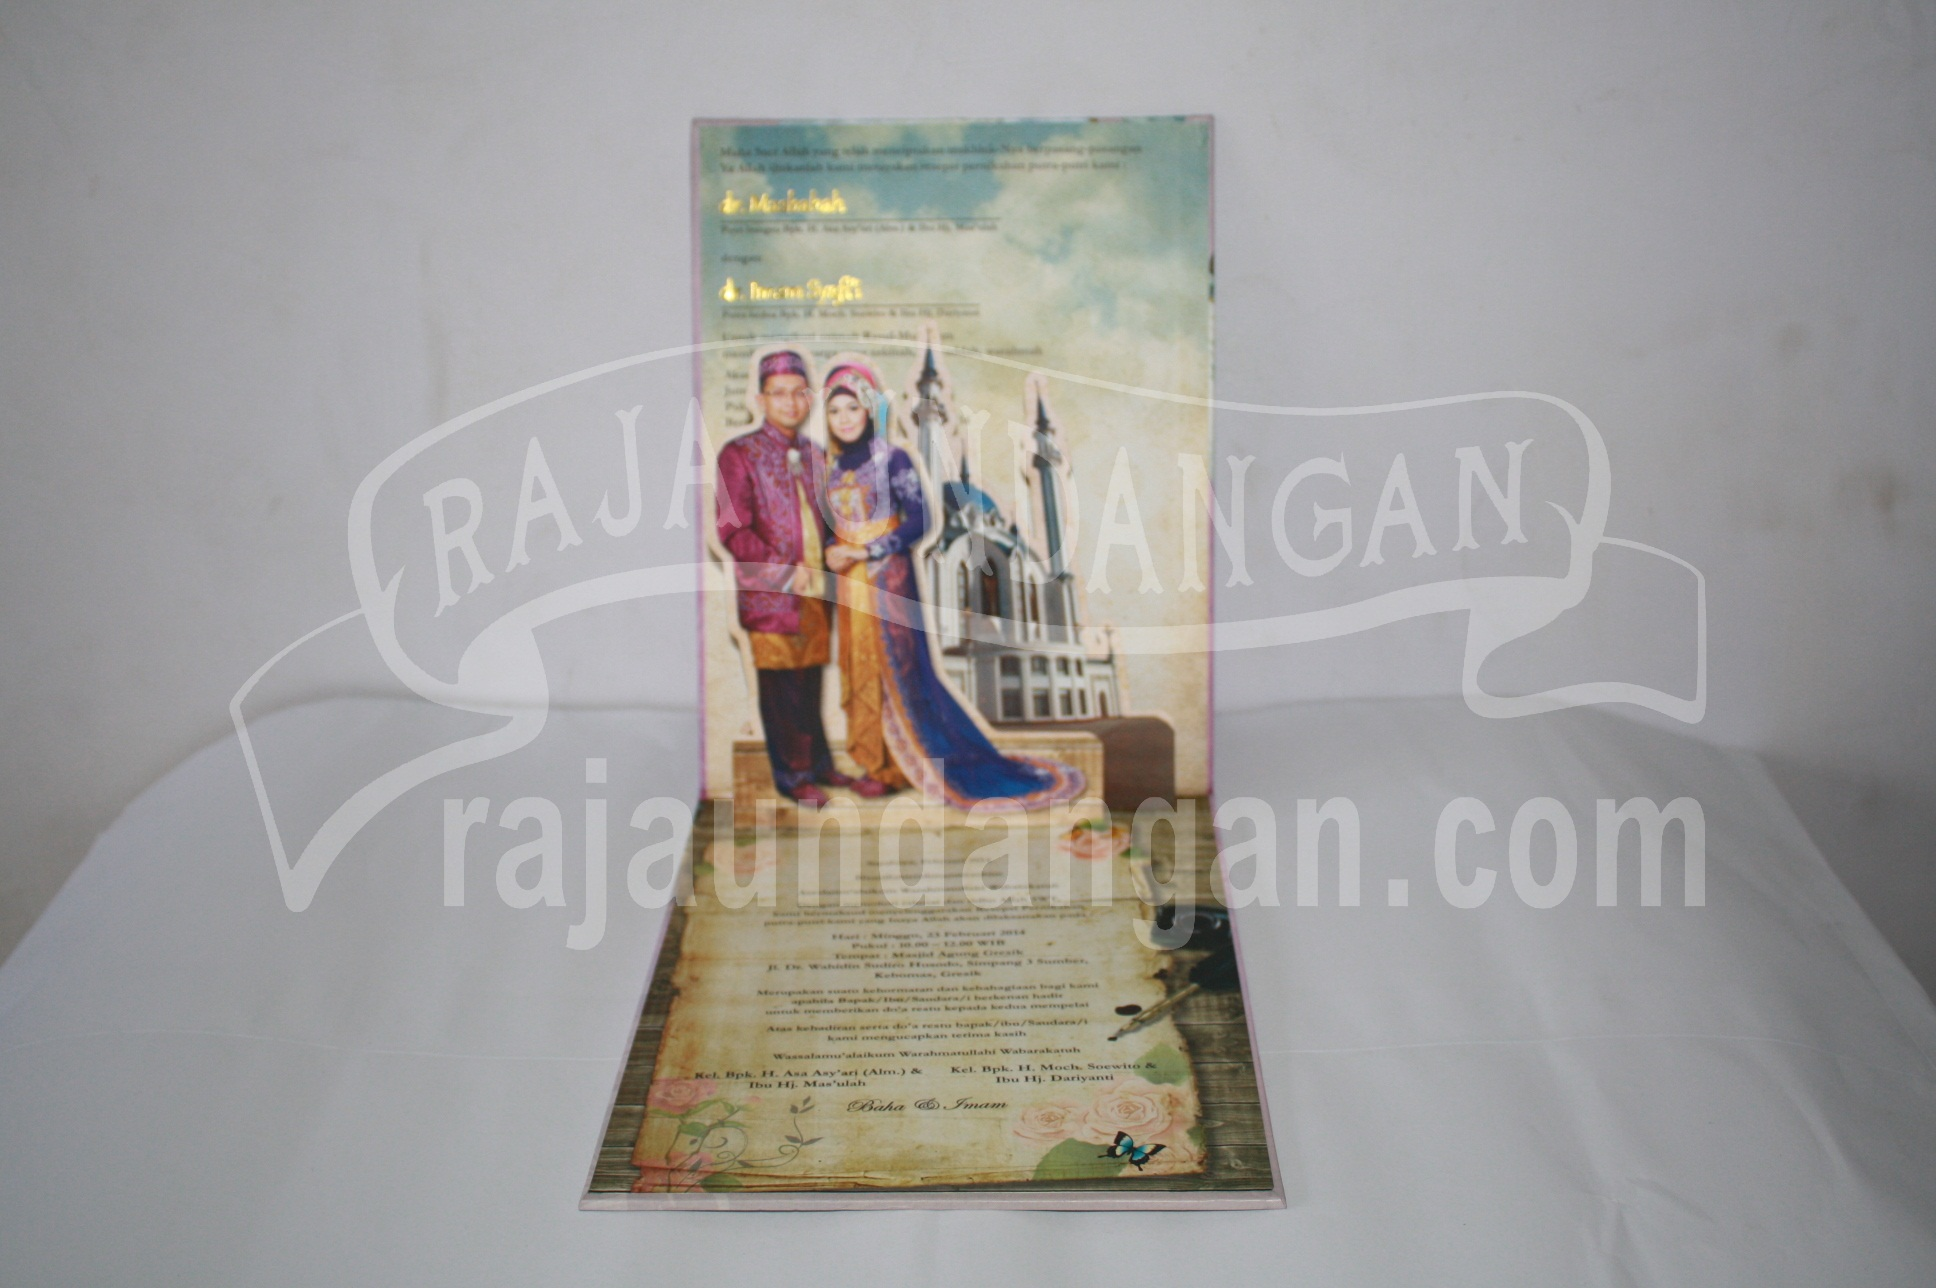 Undangan Pernikahan Hardcover Pop Up 3D Baha dan Imam EDC 49 33 - Percetakan Wedding Invitations Unik dan Simple di Simomulyo